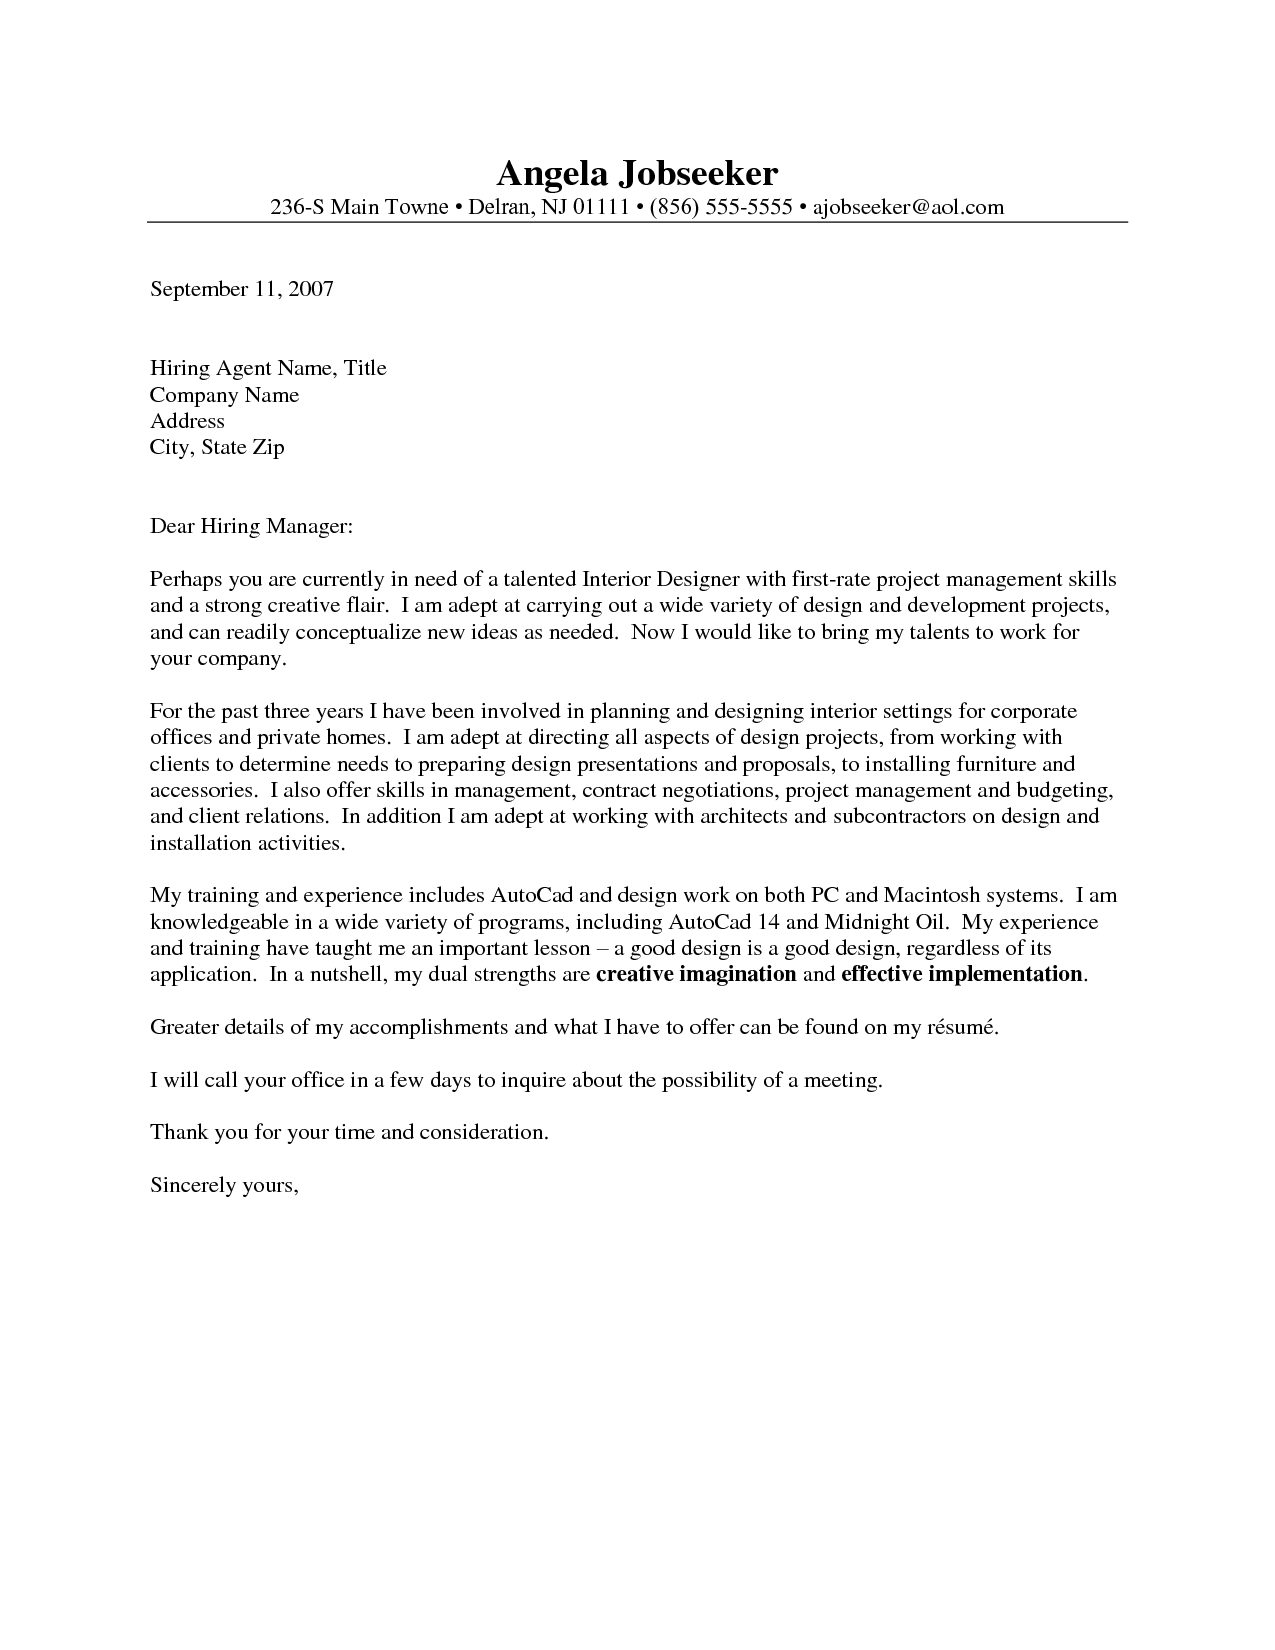 Portfolio Cover Letter Template - Outstanding Cover Letter Examples